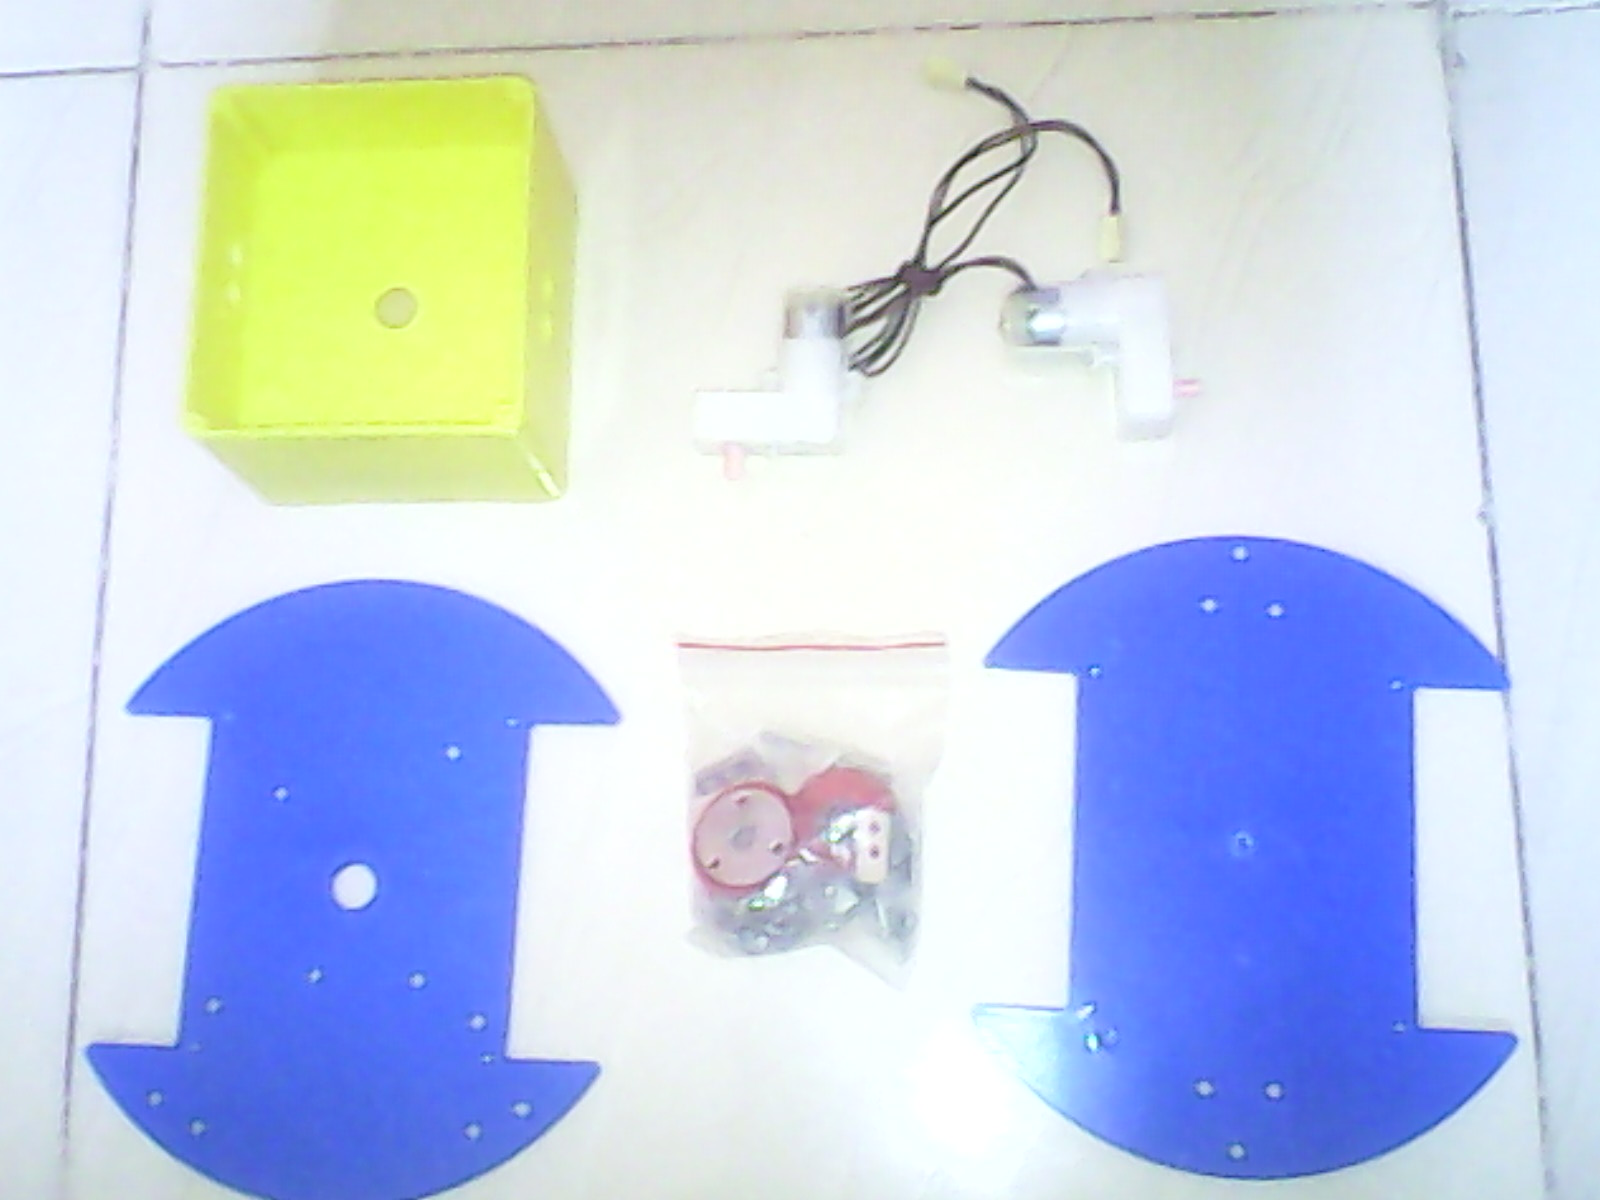 Picture of CASING & PCB & PROTOTYPING